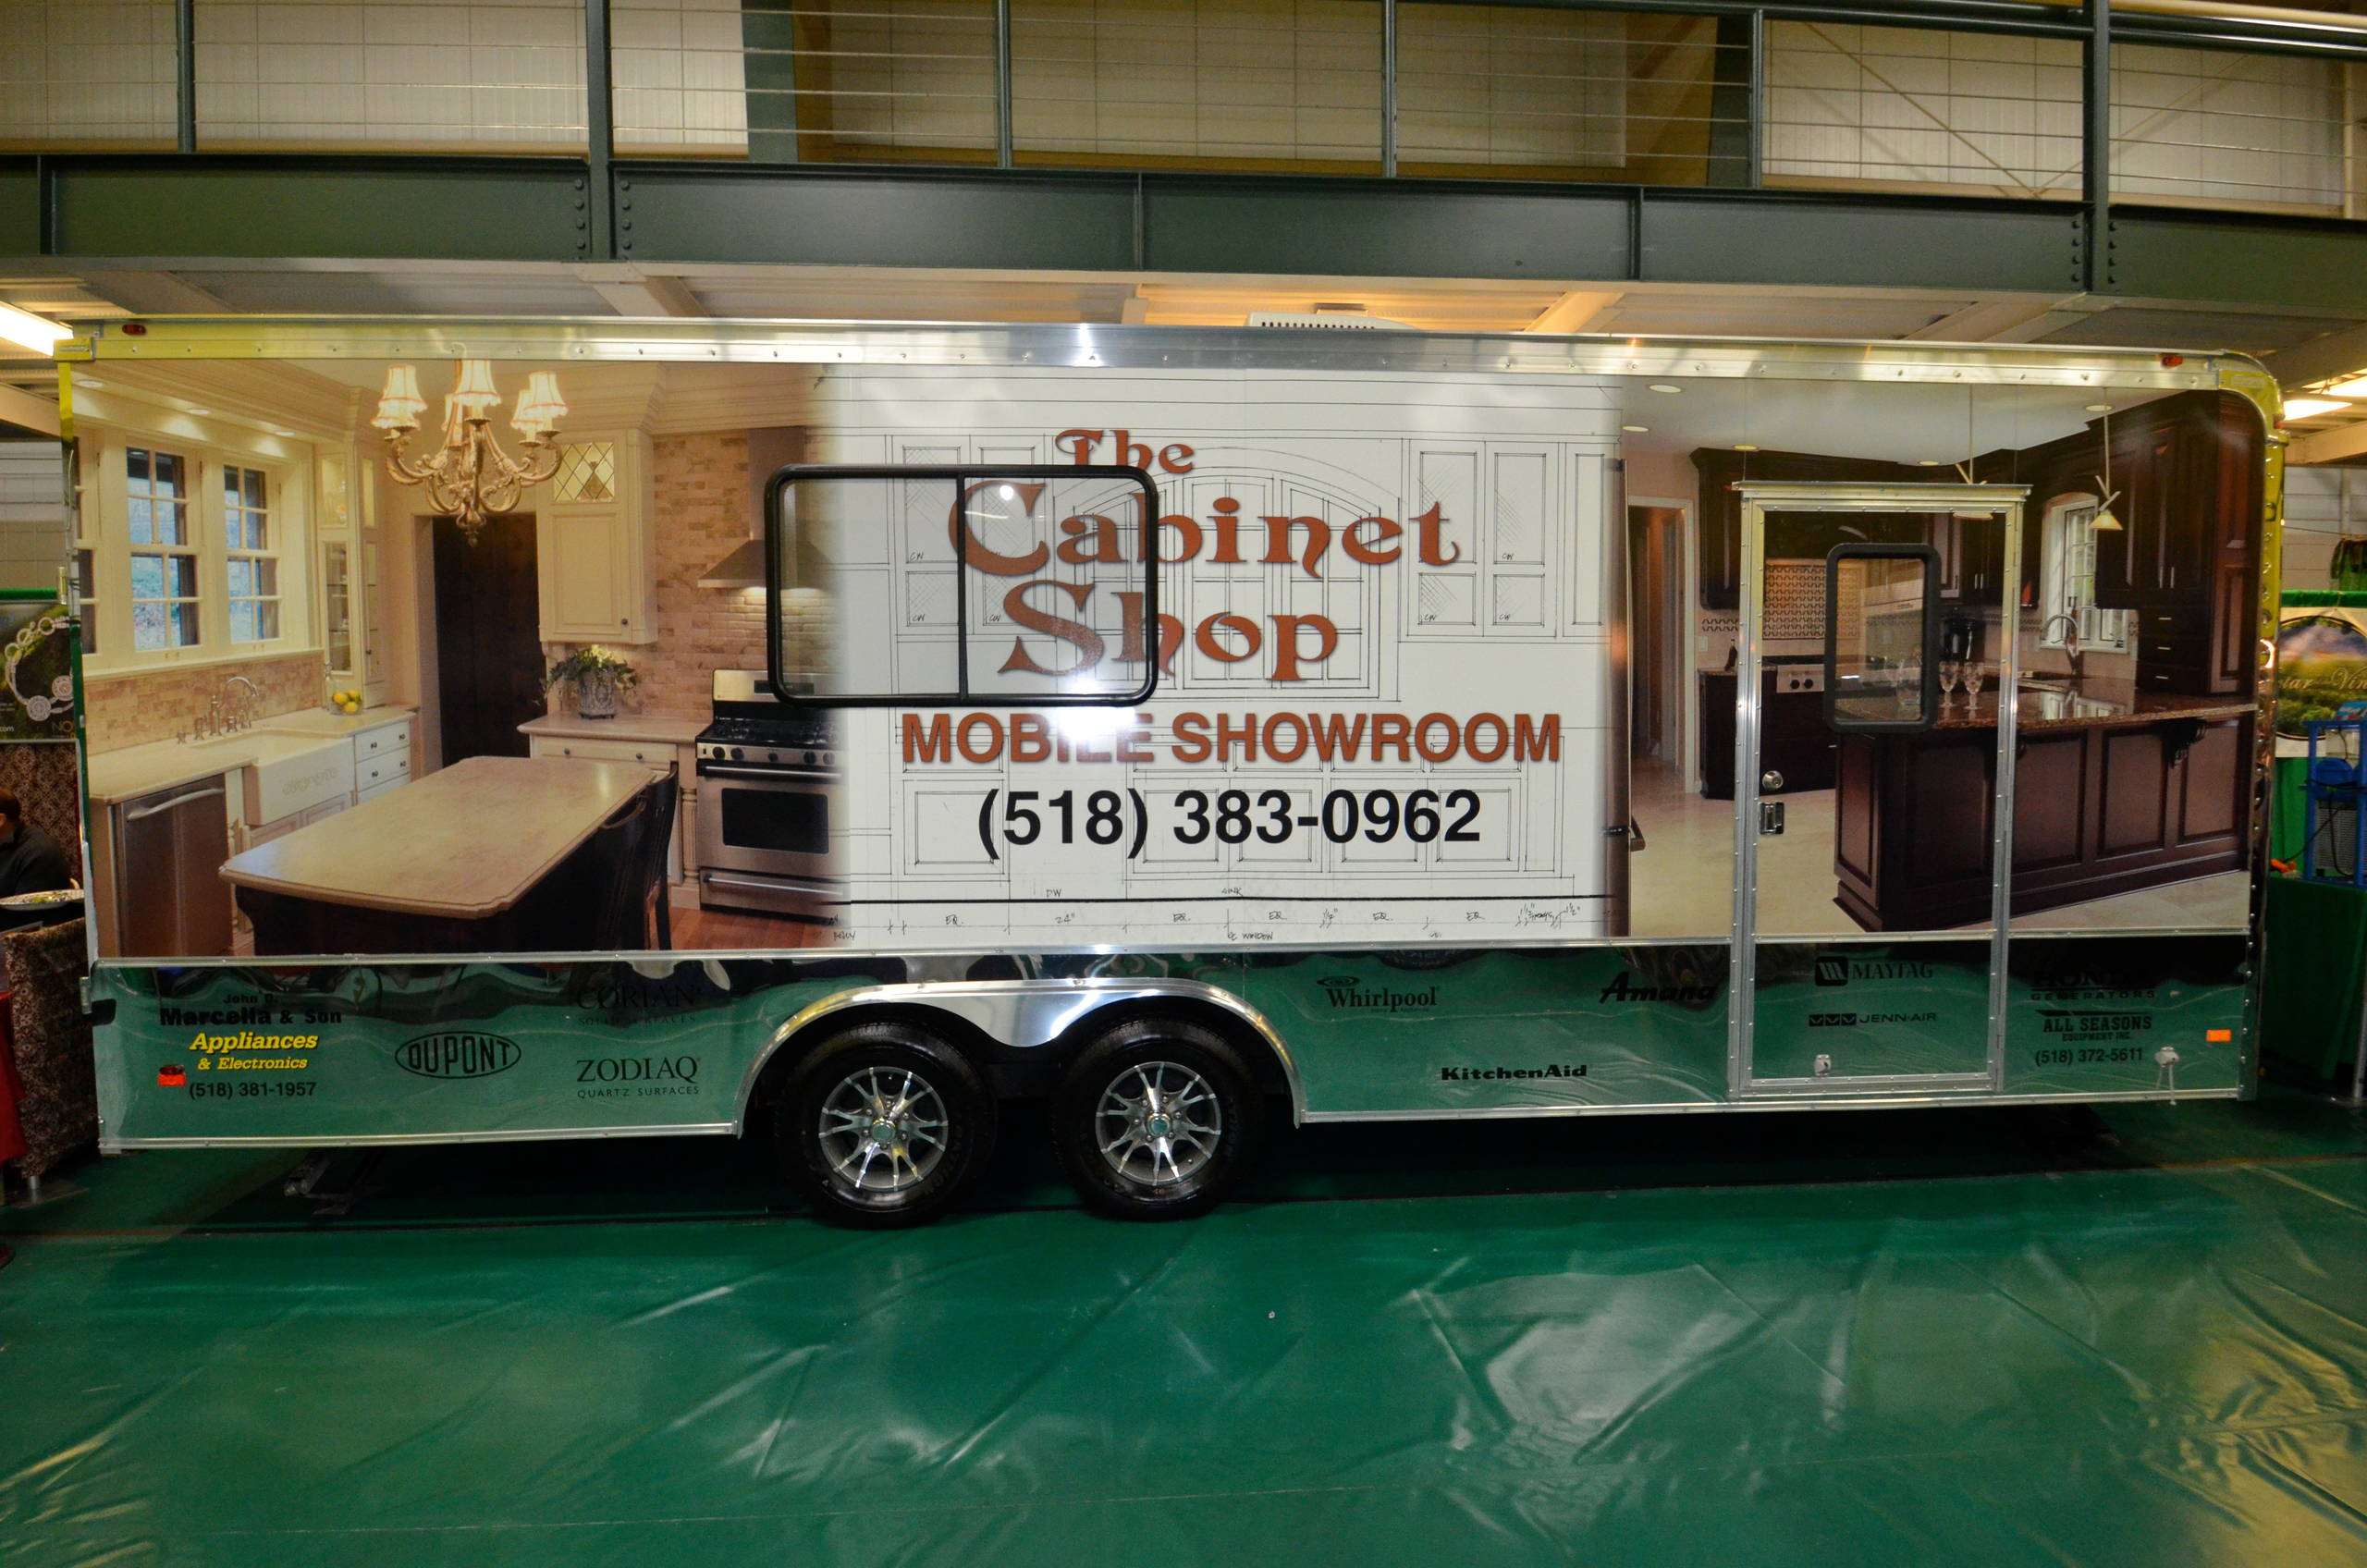 The Cabinet Shop Mobile Showroom